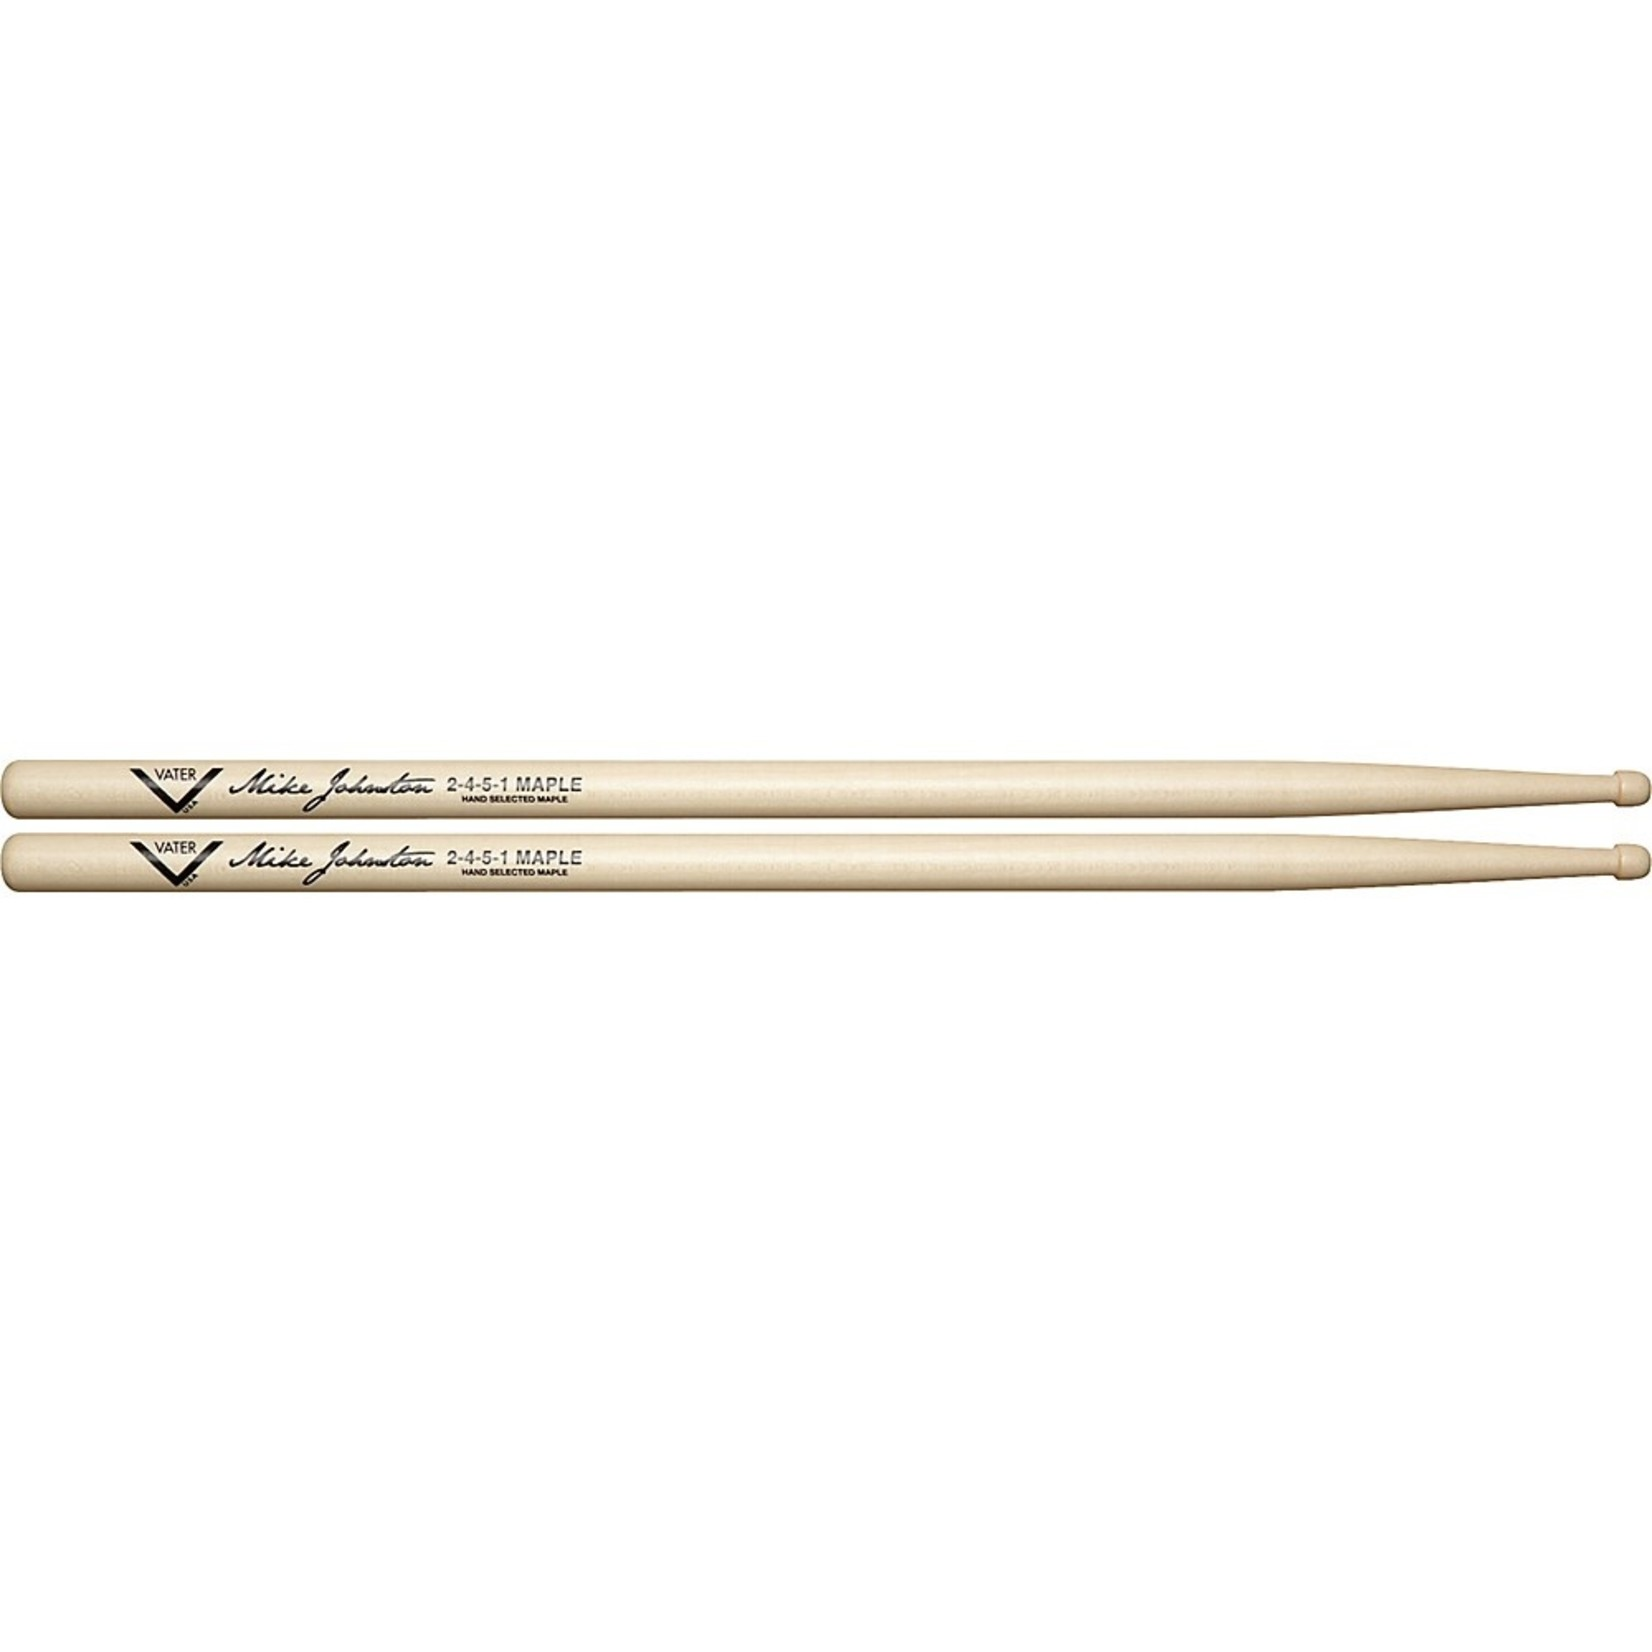 Vater Vater Mike Johnston 2451 Maple